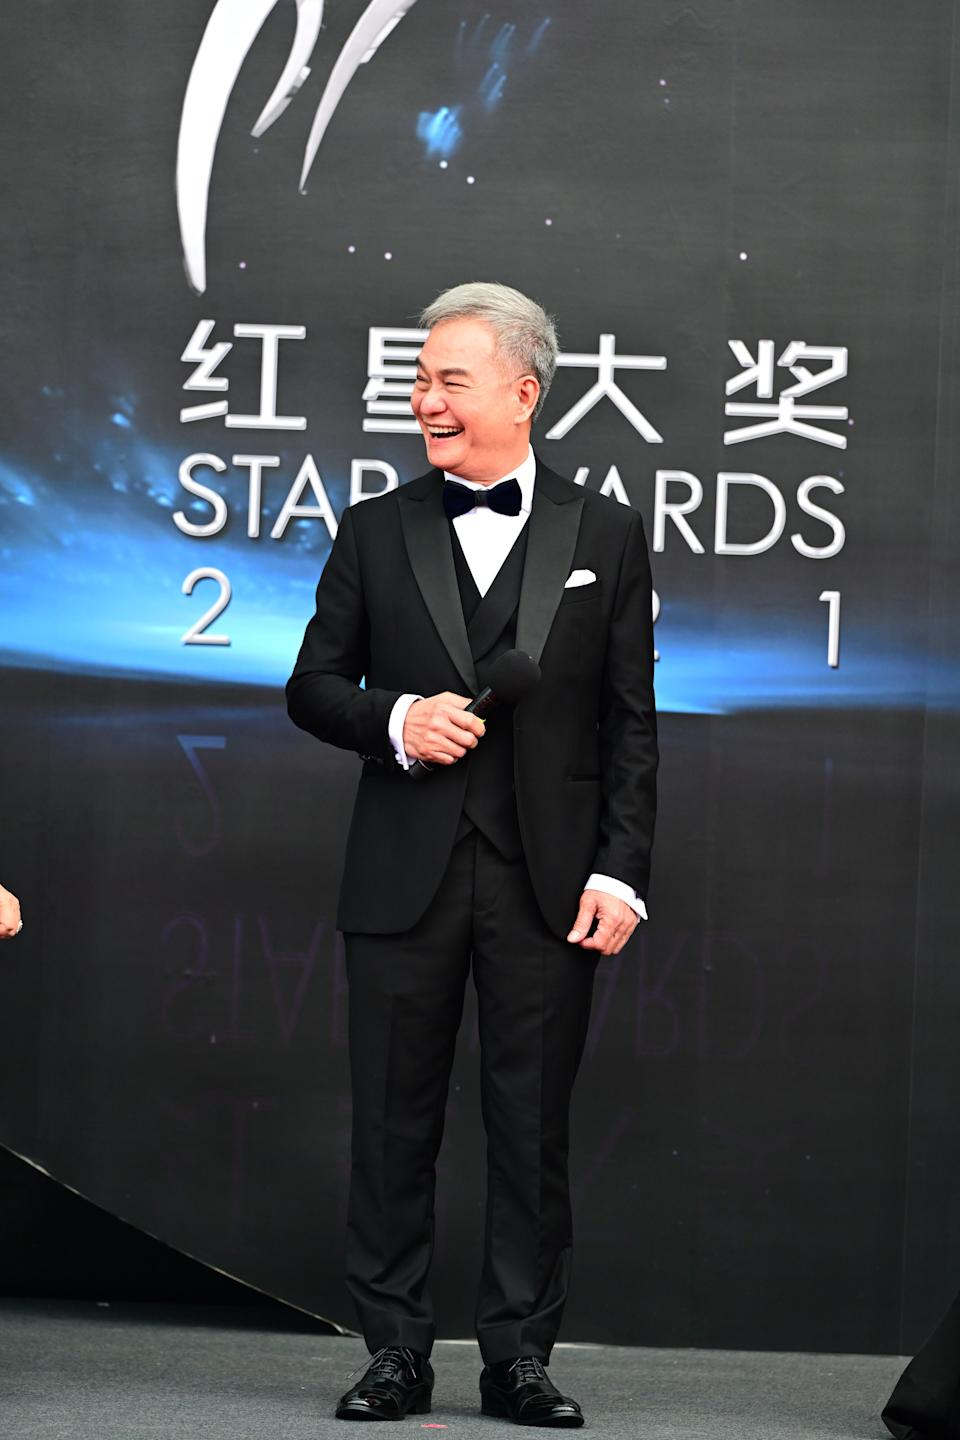 Richard Low at Star Awards held at Changi Airport on 18 April 2021. (Photo: Mediacorp)